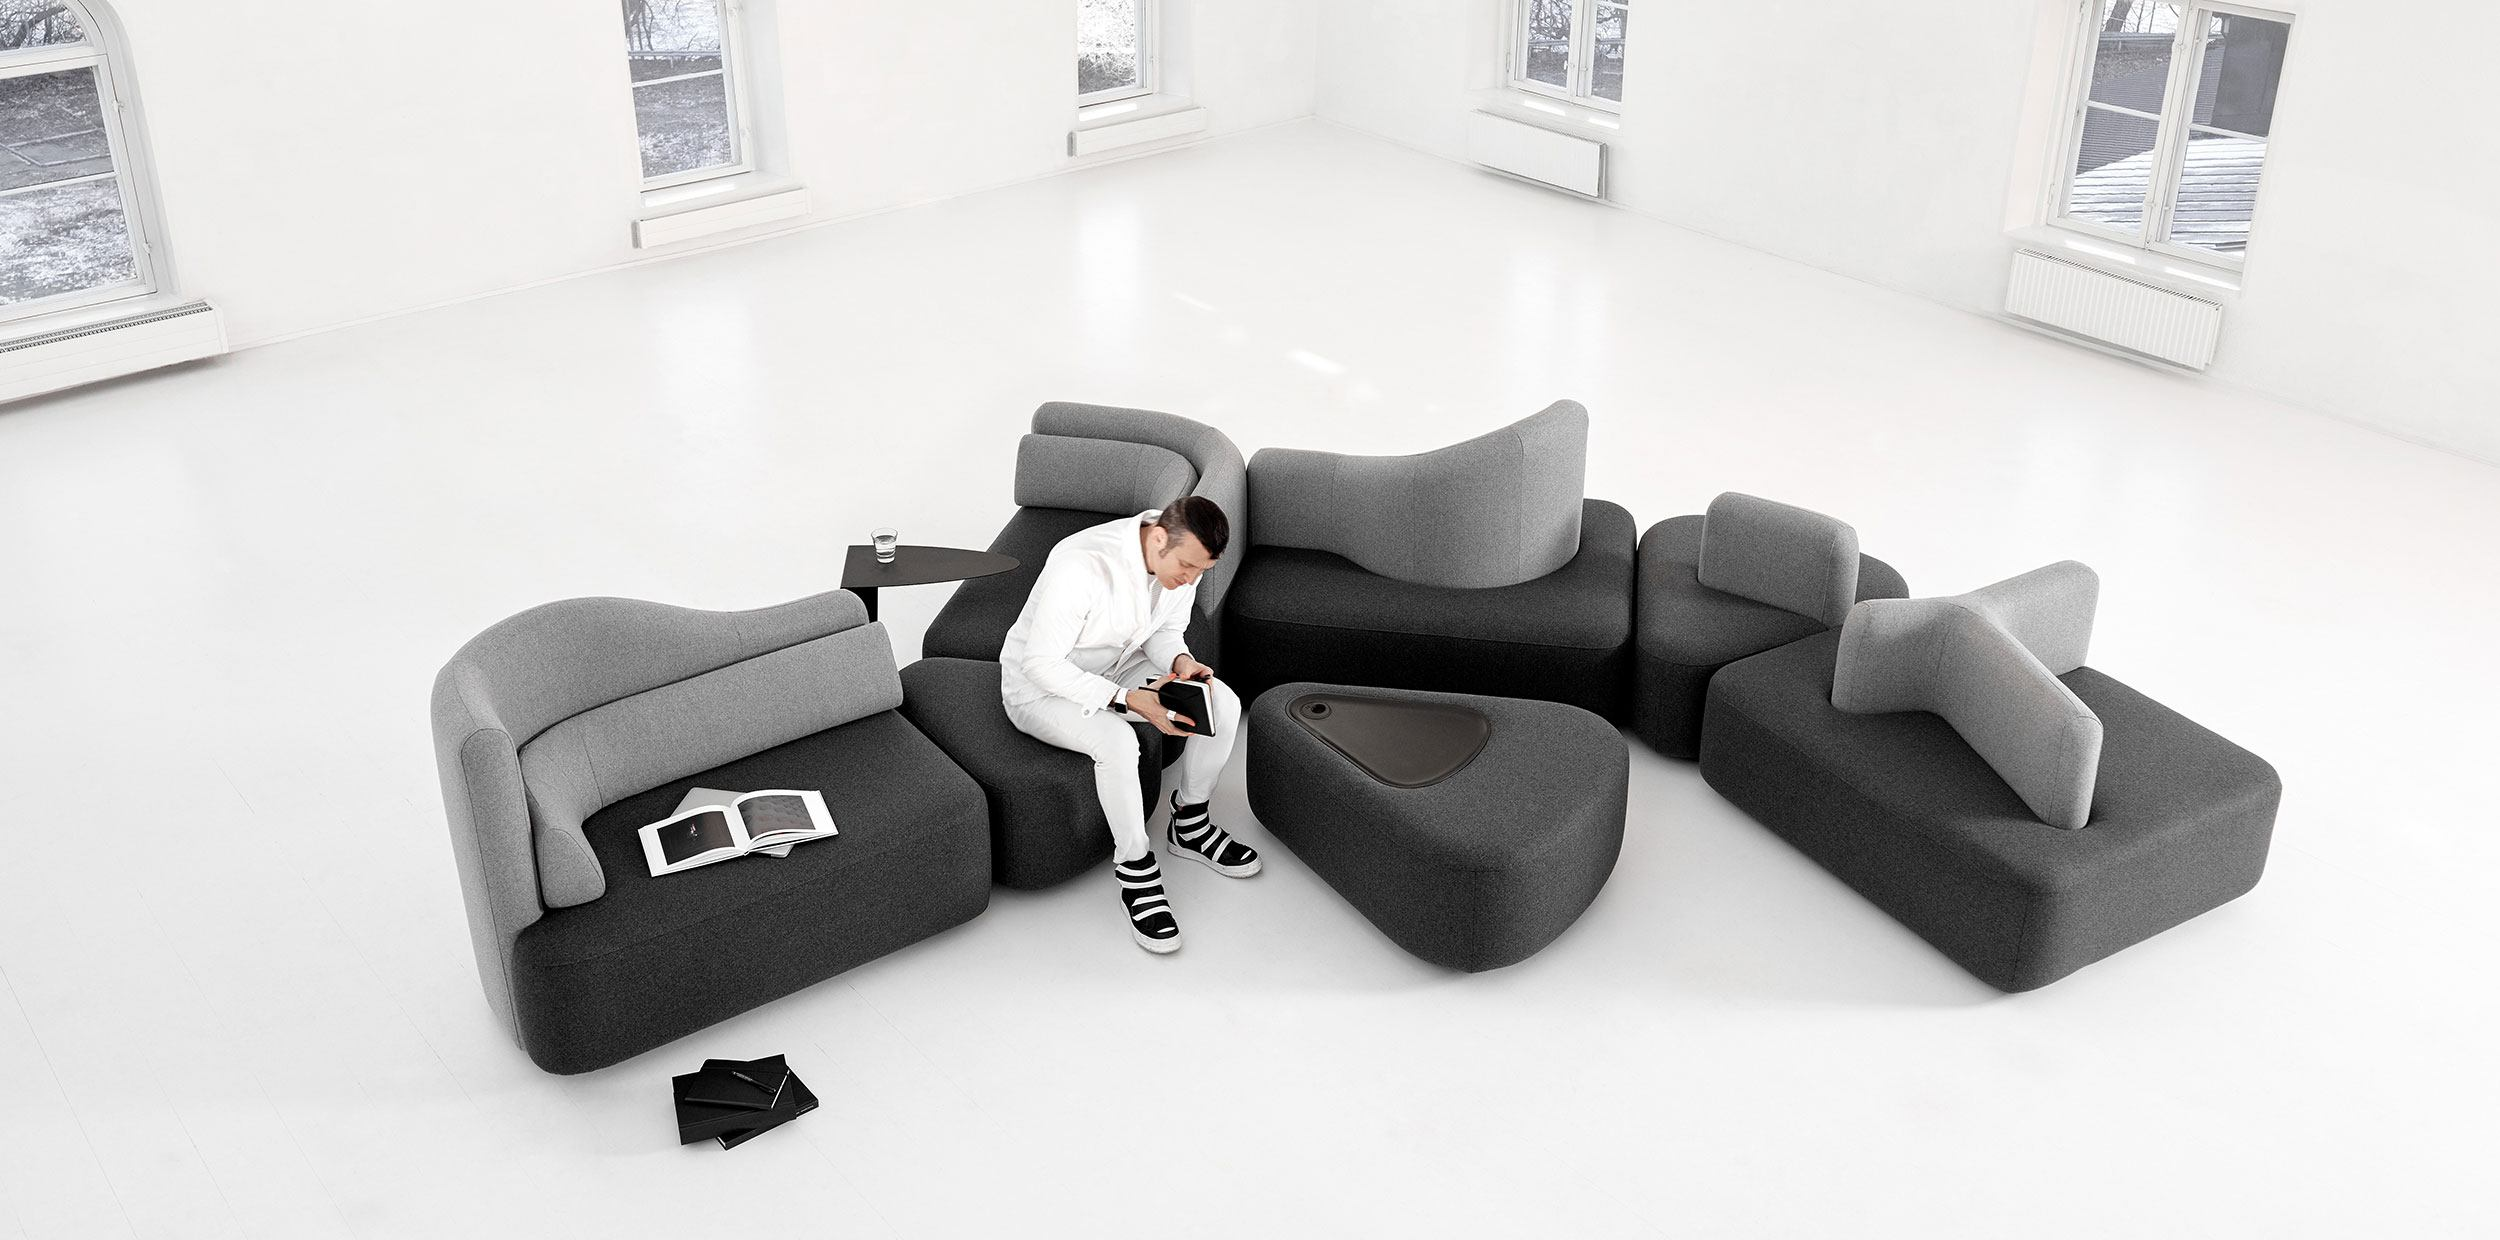 Ottawa modular sofa set in white room